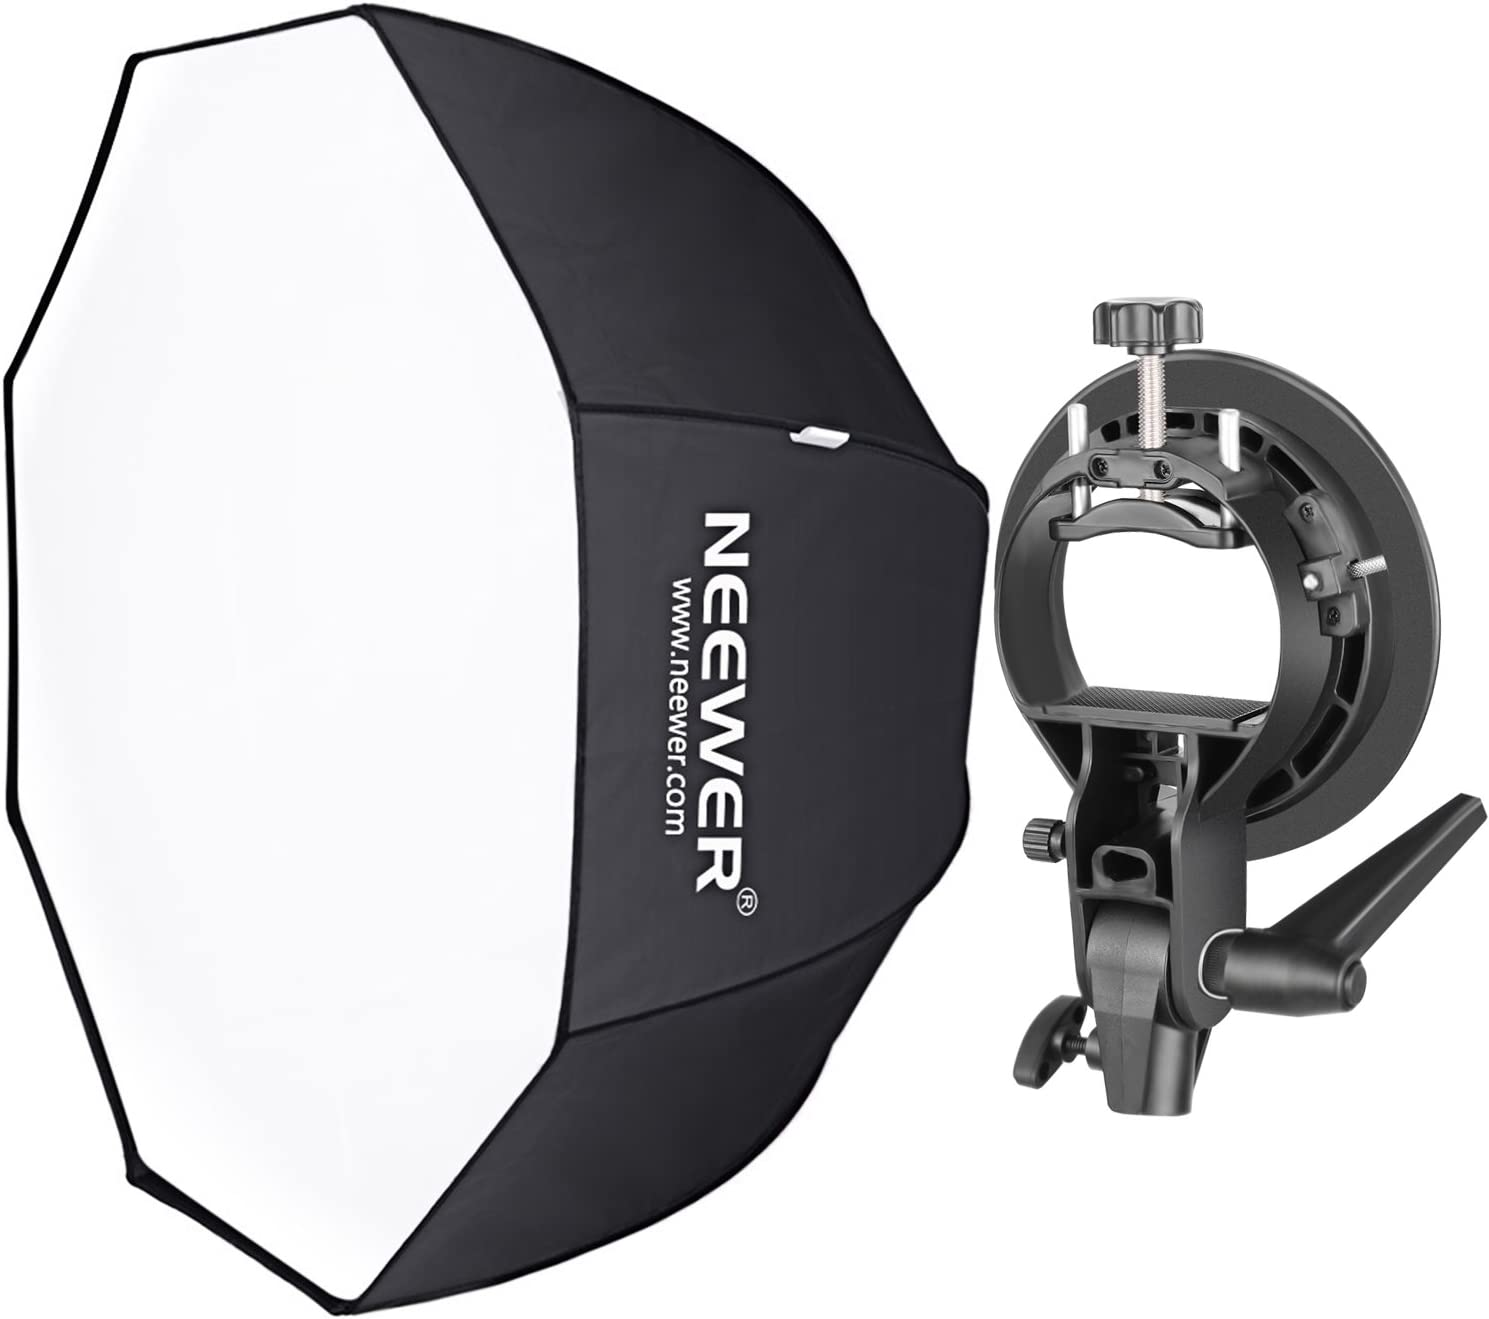 Portrait and Product Photography with Bowens Mount S-Type Bracket Holder Neewer 48 inches//120 centimeters Octagonal Softbox with Red Edges and Carrying Bag for Speedlite Studio Flash Monolight